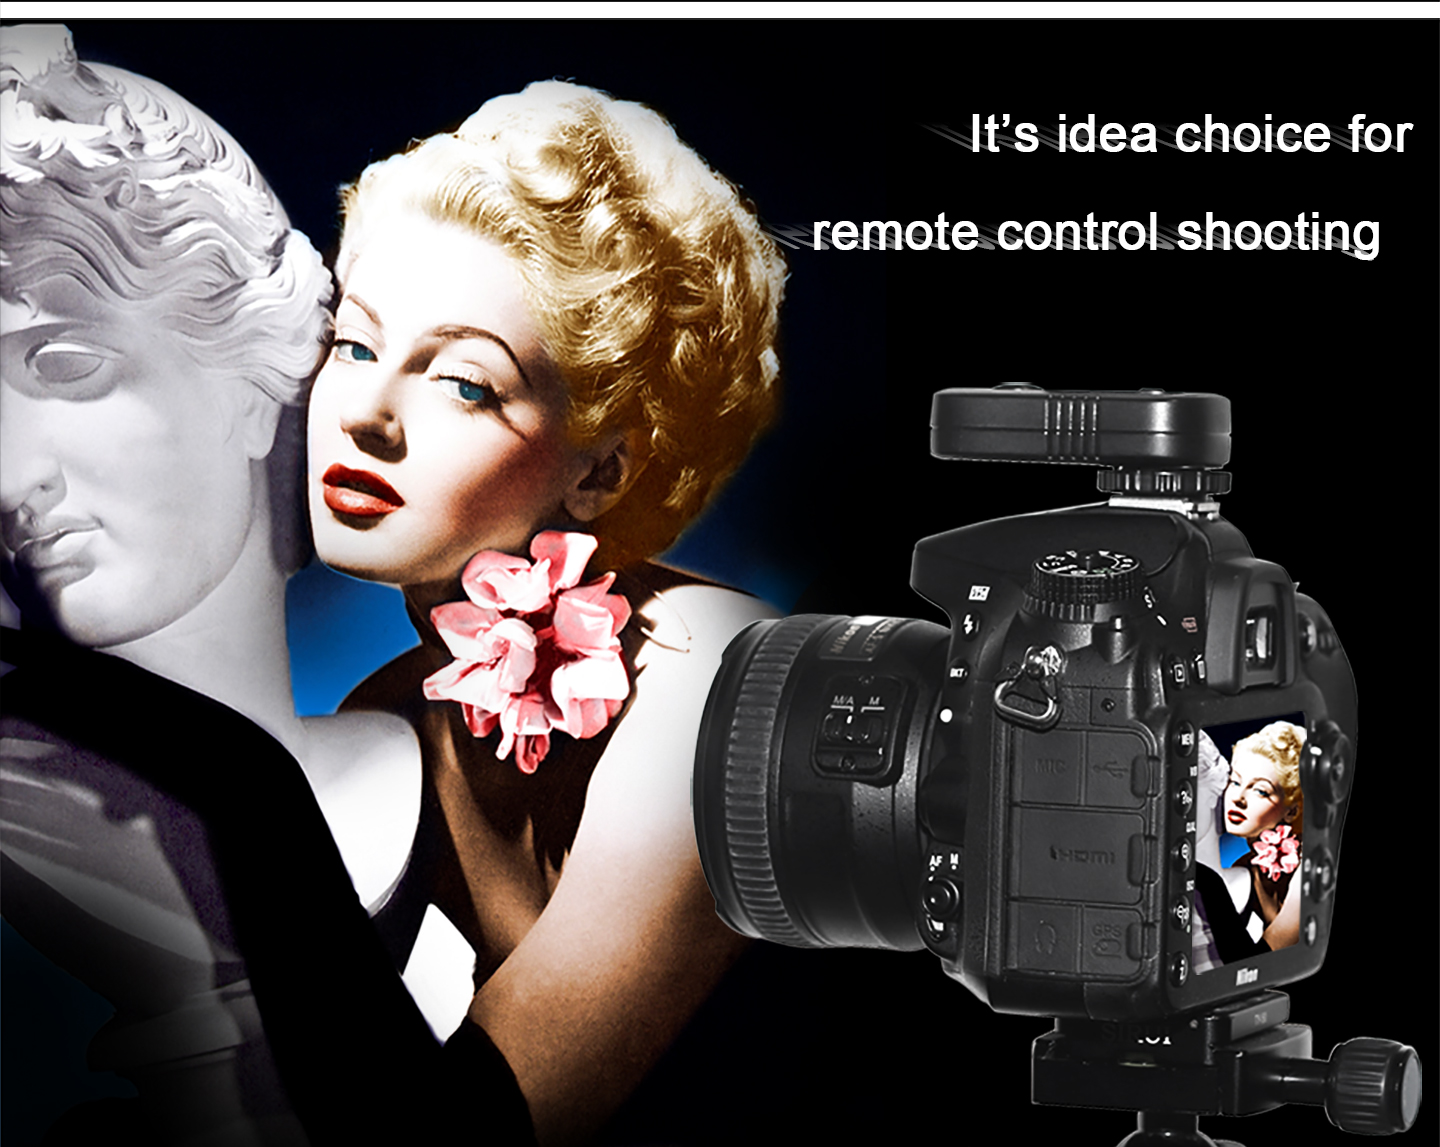 It's idea choice for remote control shooting